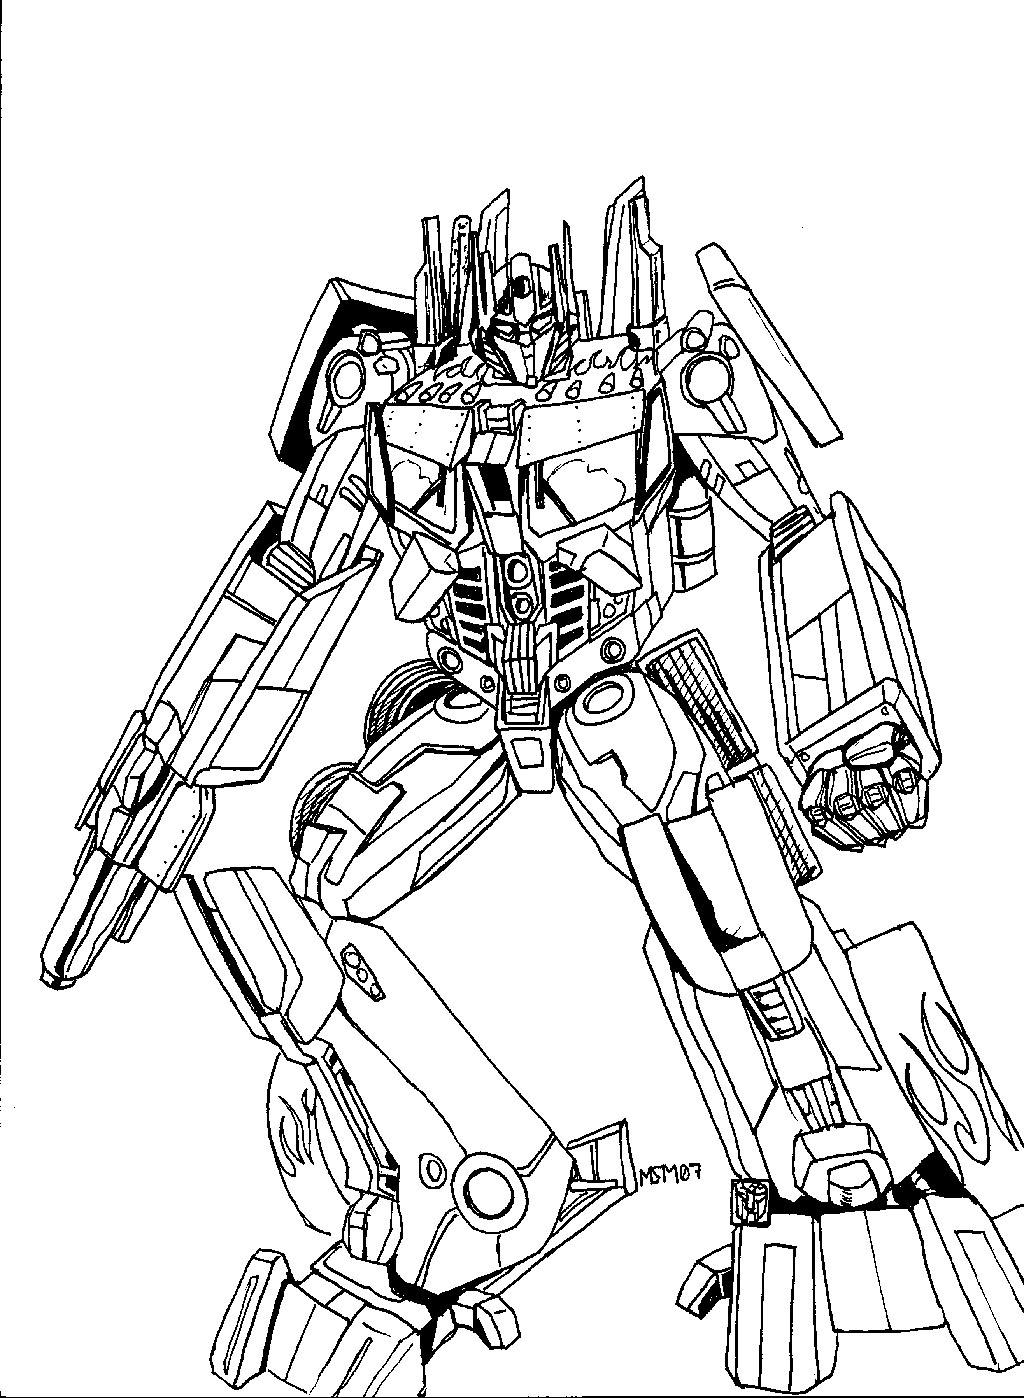 transformers movie coloring pages transformers coloring pages coloringpages1001com transformers movie pages coloring